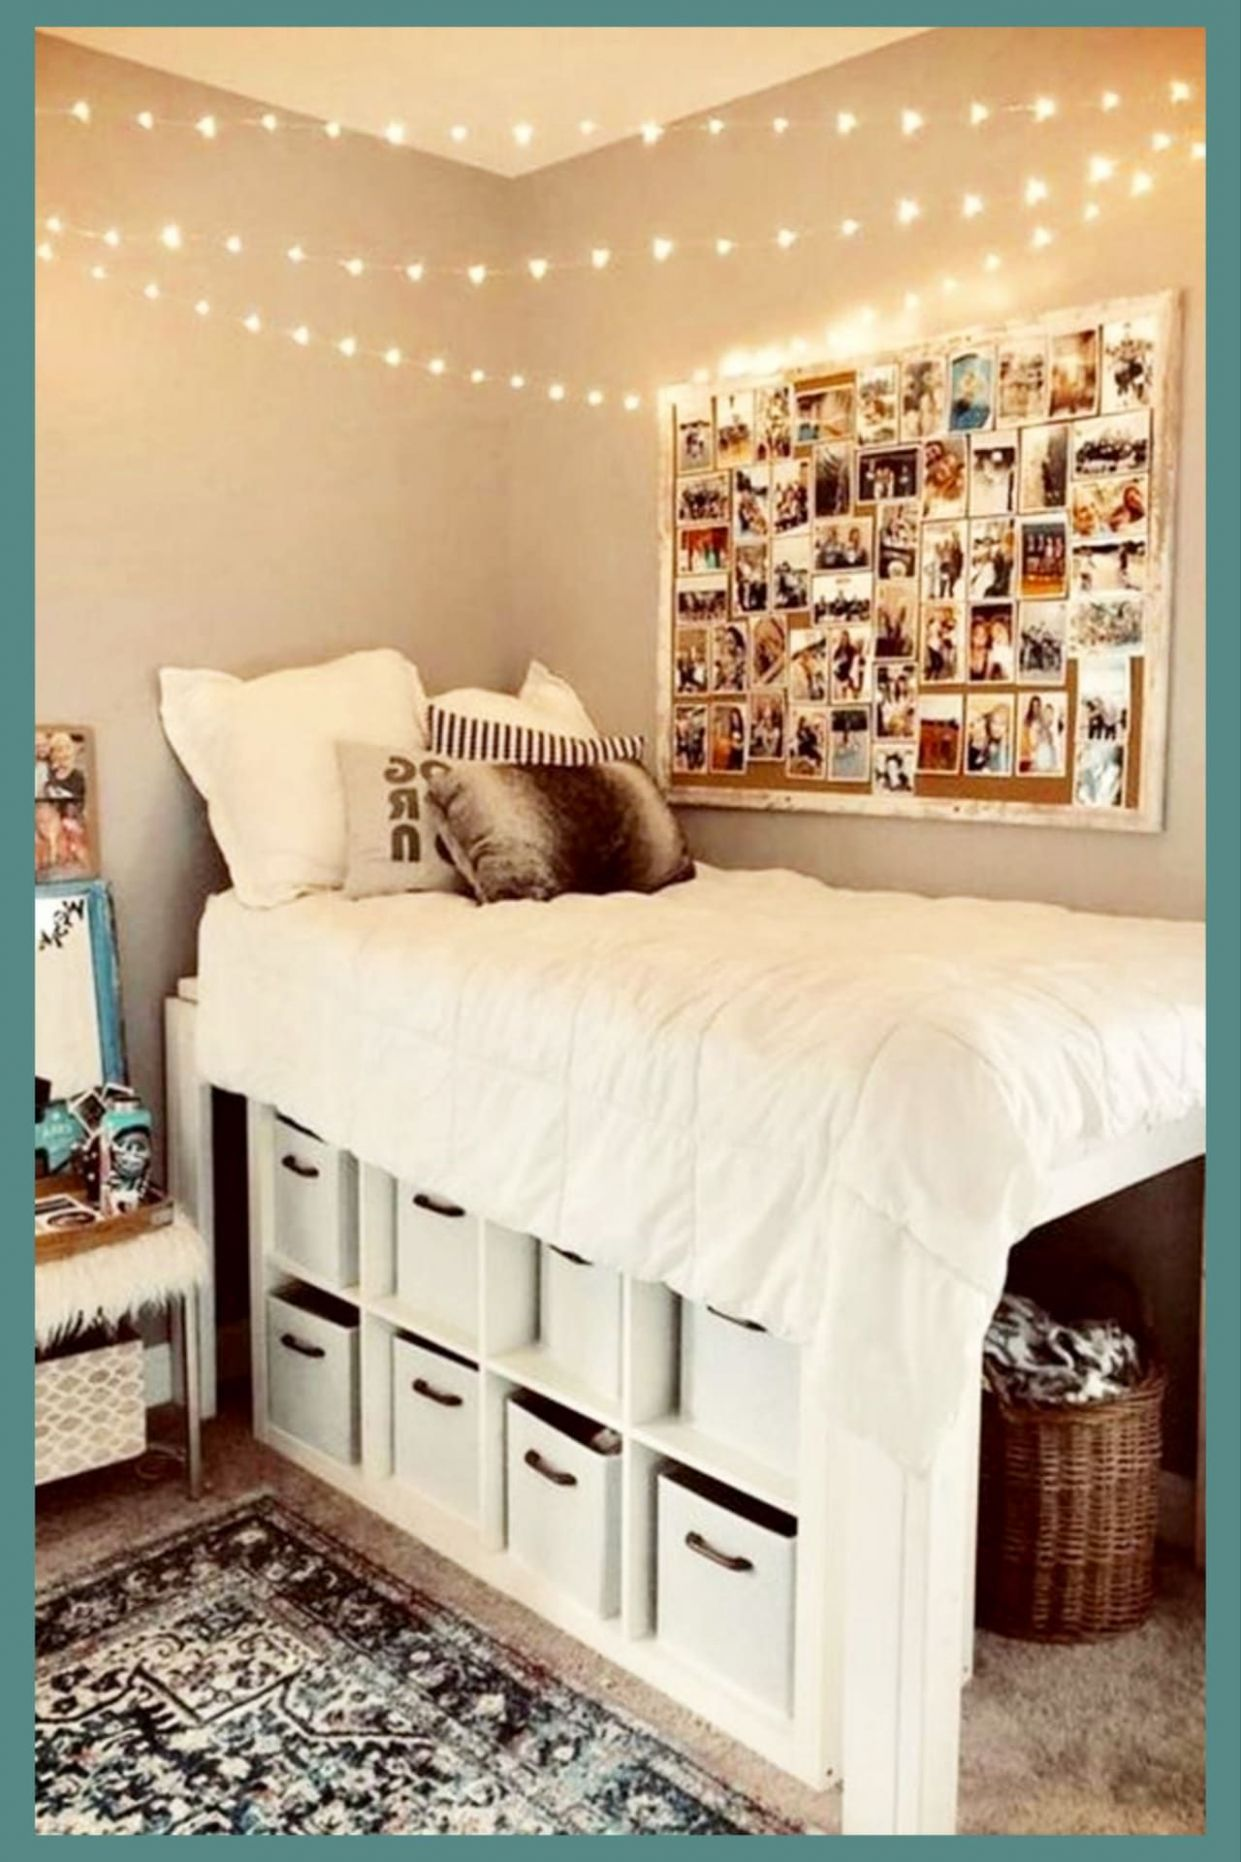 DIY Dorm Room Ideas - Dorm Decorating Ideas PICTURES for 12 ..